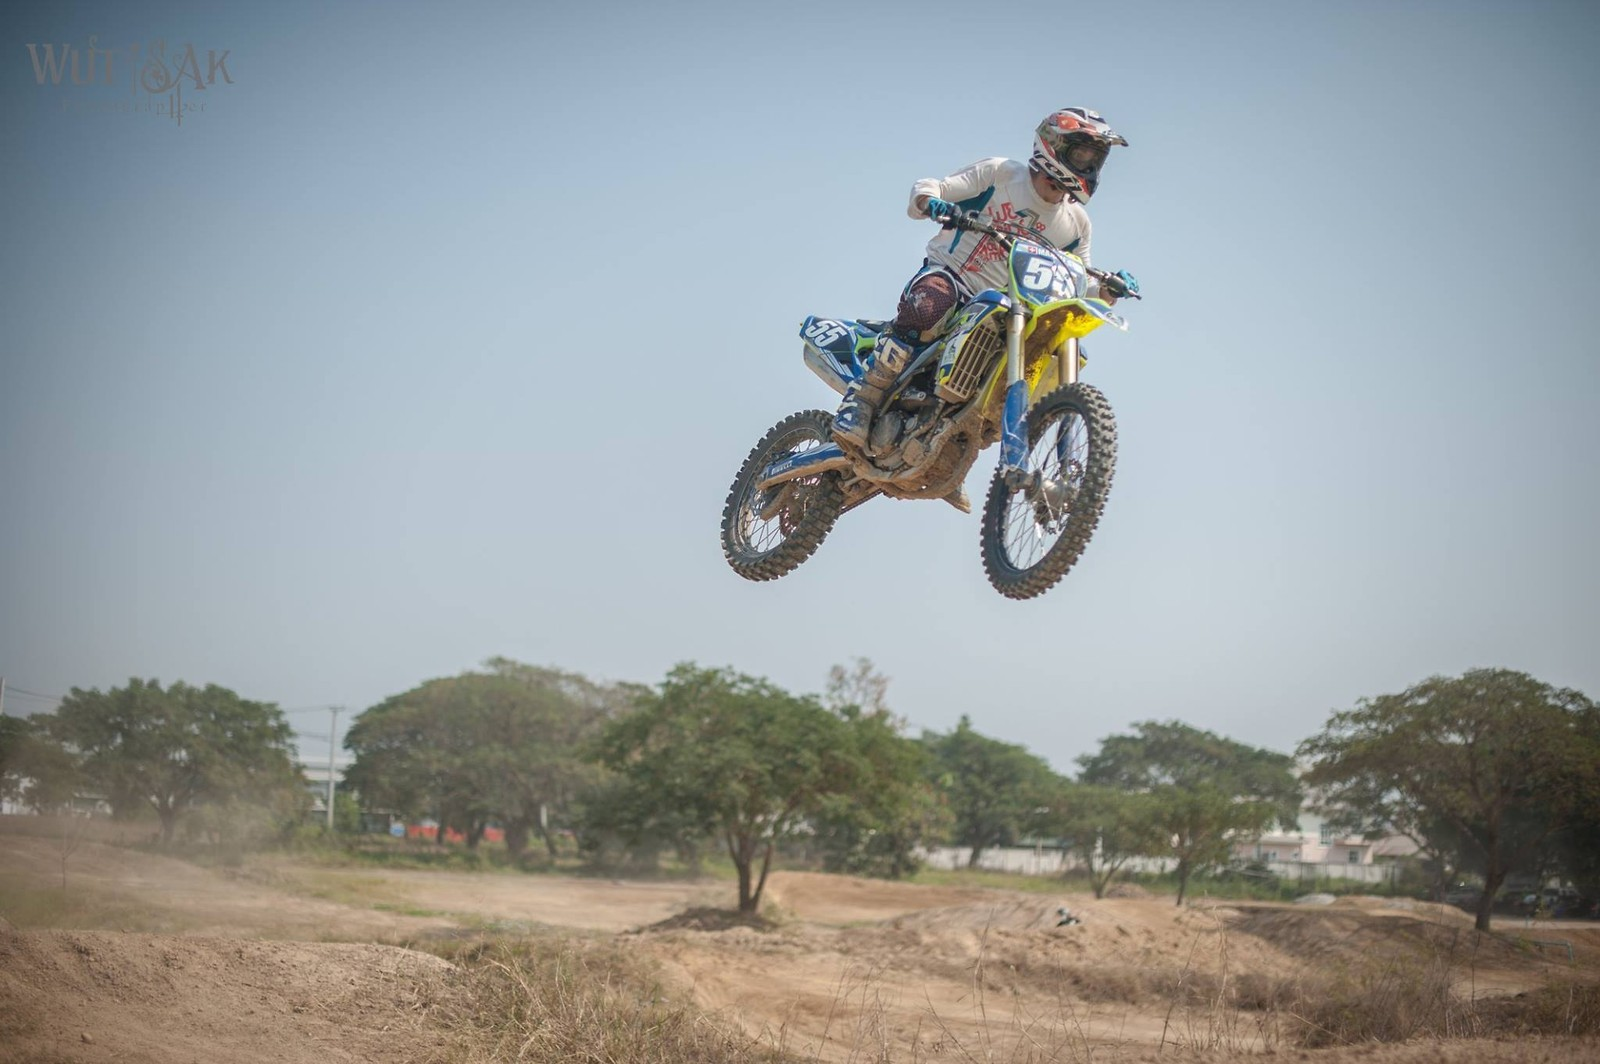 16903315 10206732699156637 6145825108619710926 o - maxximmee - Motocross Pictures - Vital MX